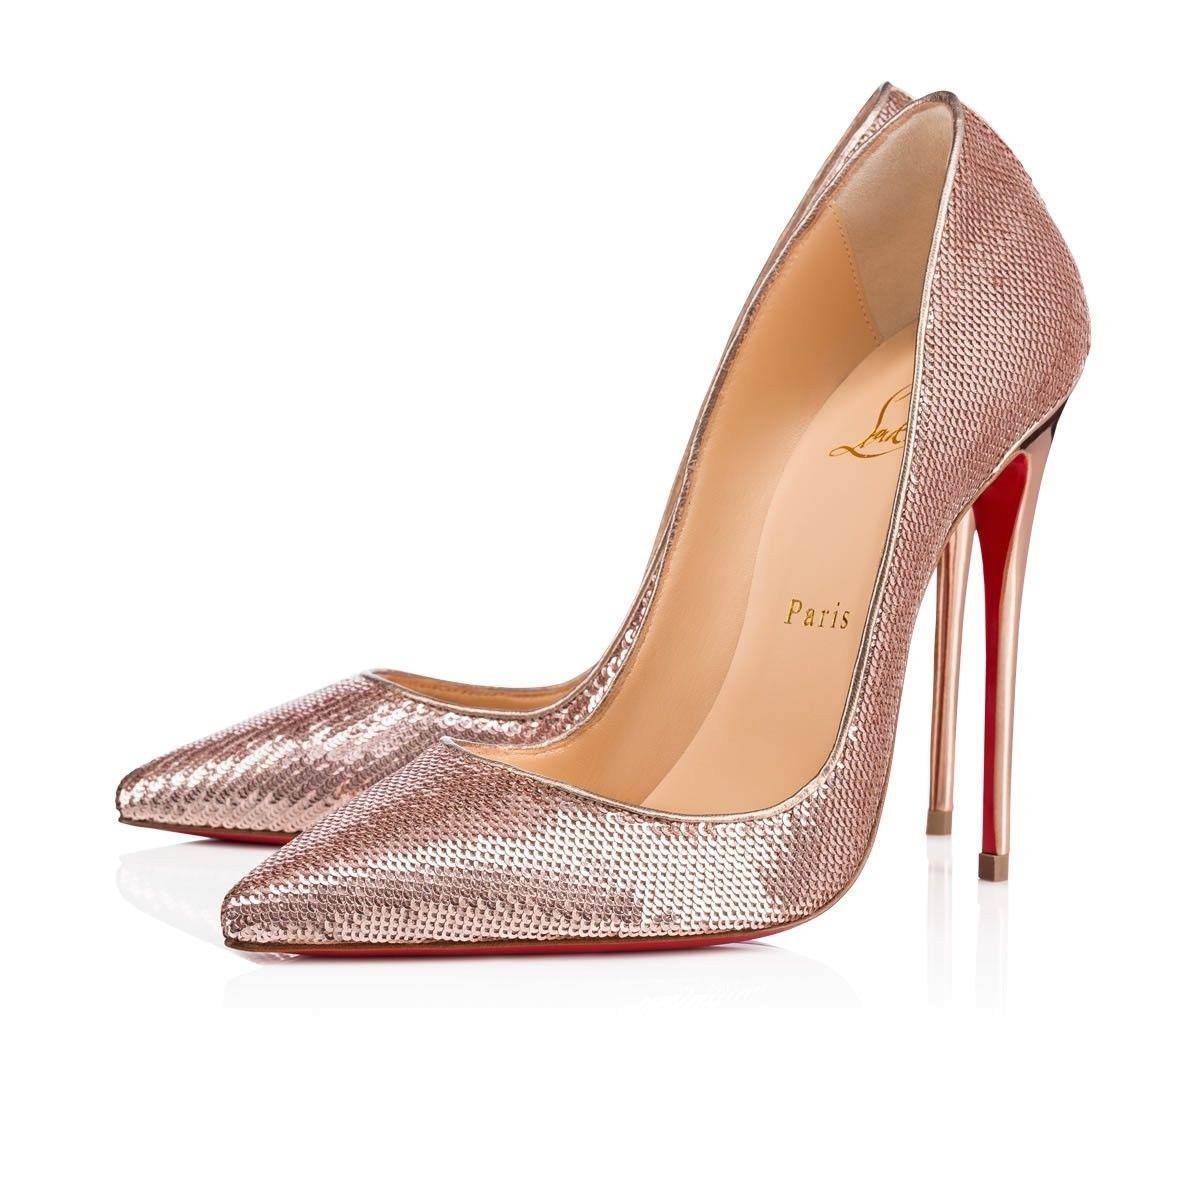 6a792ee5b51 low price christian louboutin jeweled shoes canada d3f01 97ab2